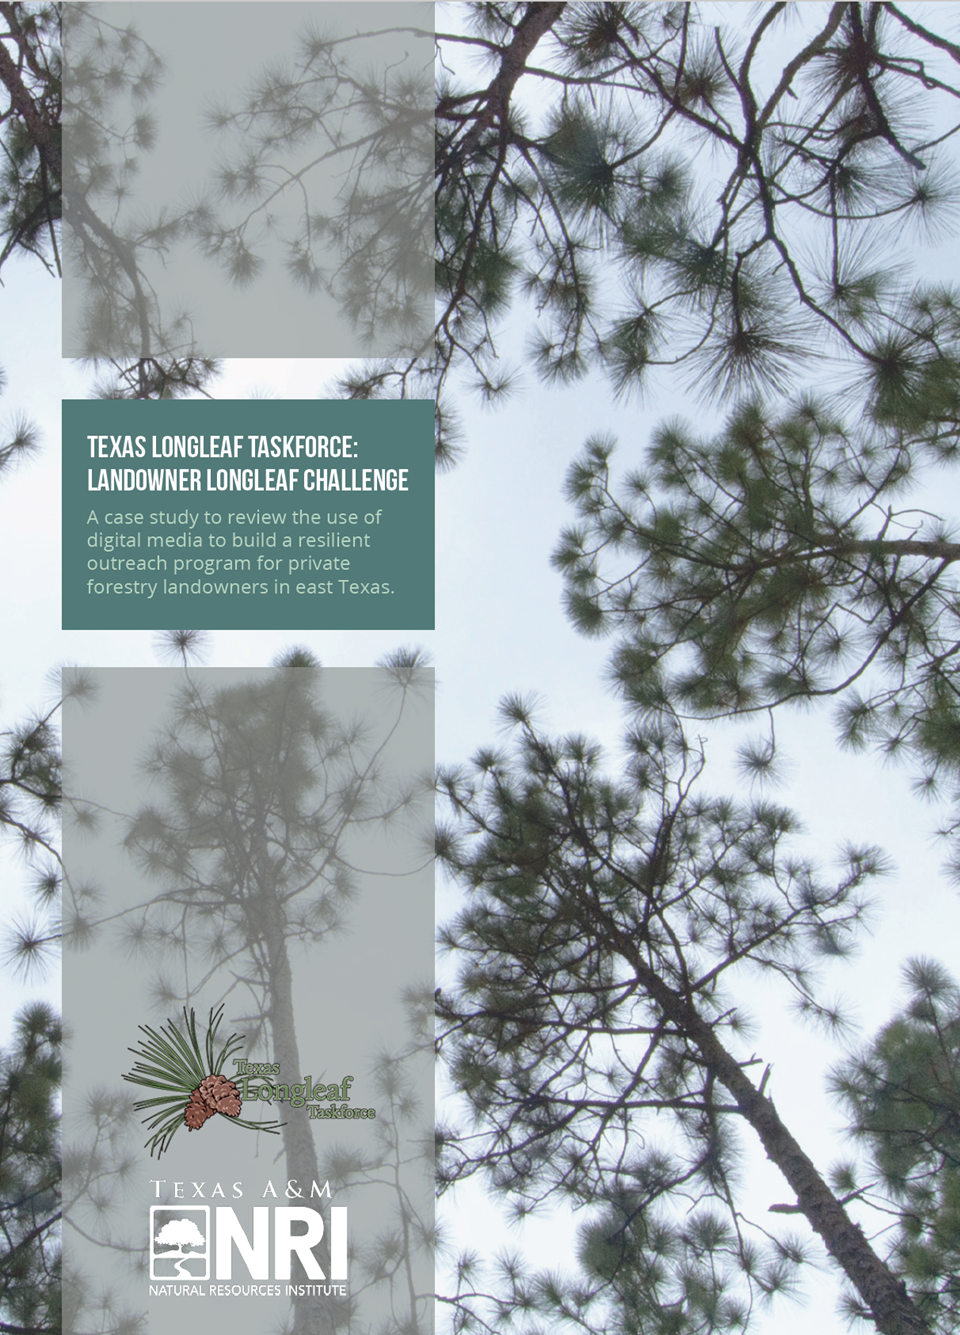 Texas Longleaf Taskforce: Landowner Longleaf Challenge